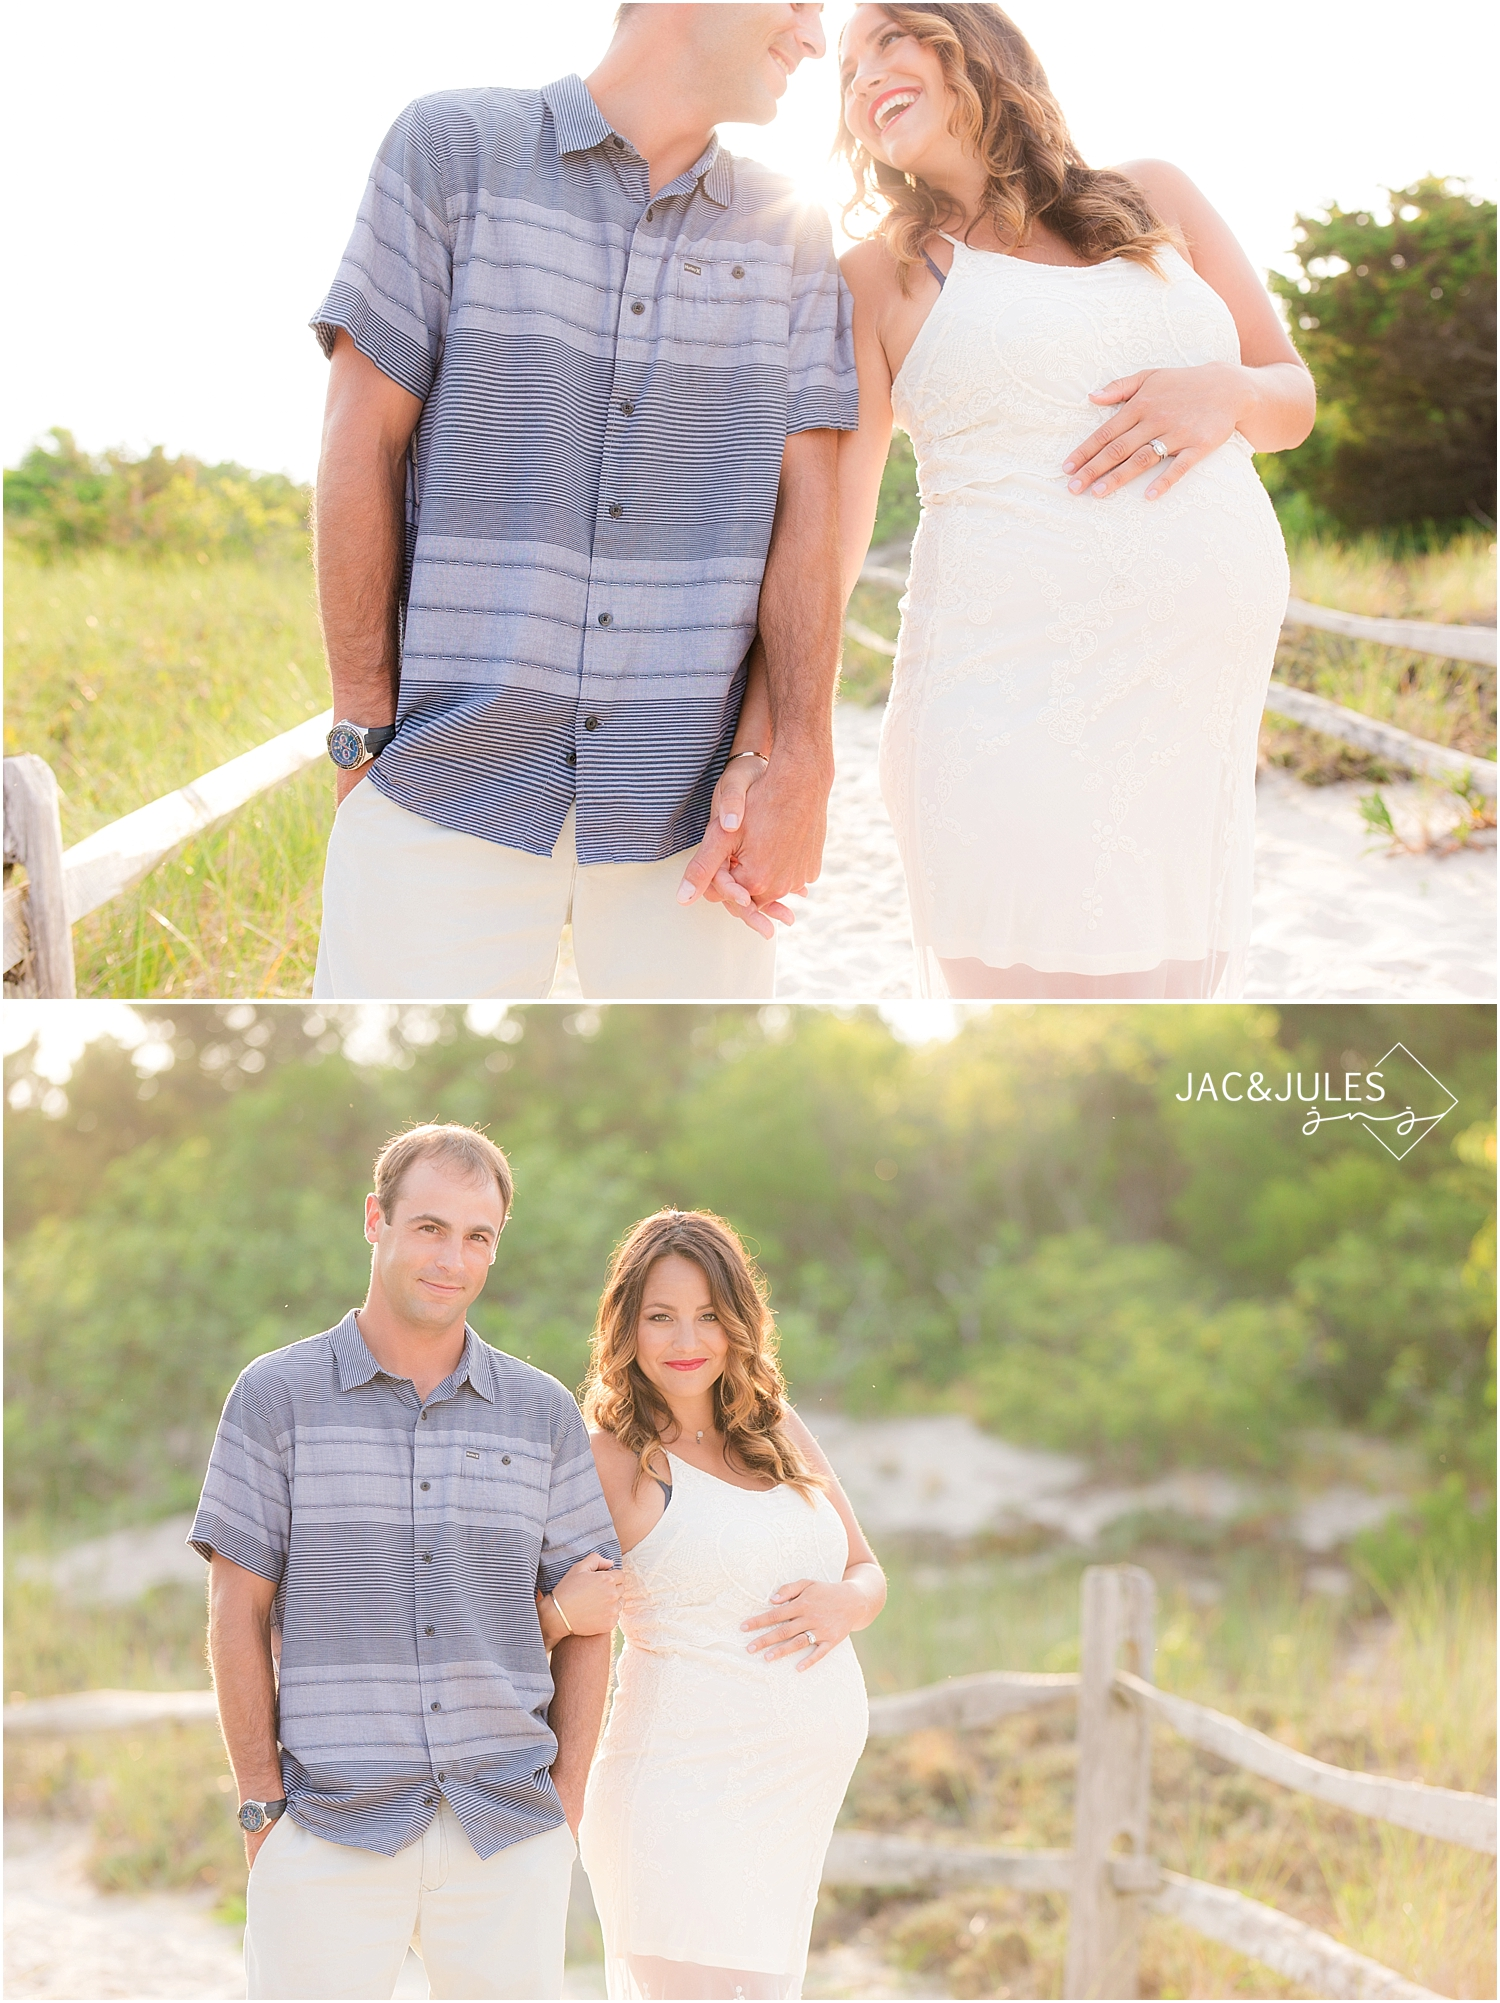 jacnjules photographs maternity photos at at sunset in island beach state park nj